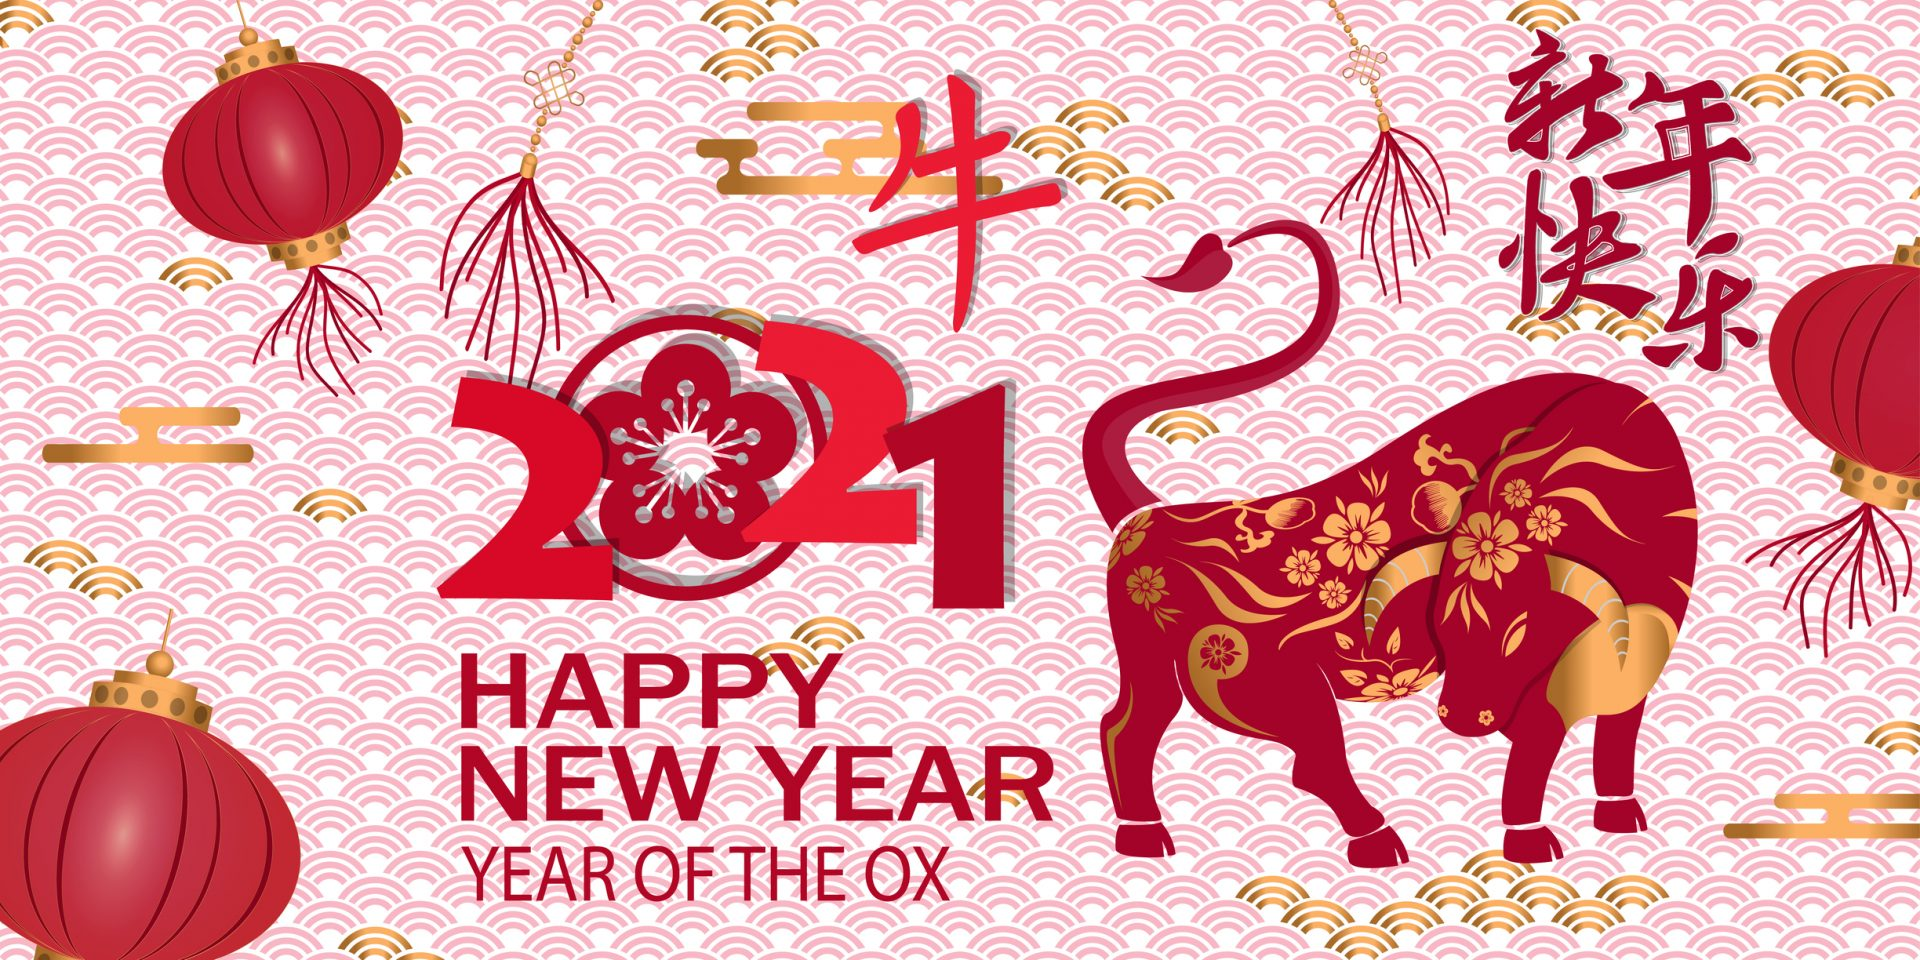 Happy Chinese New Year - Year of the Ox